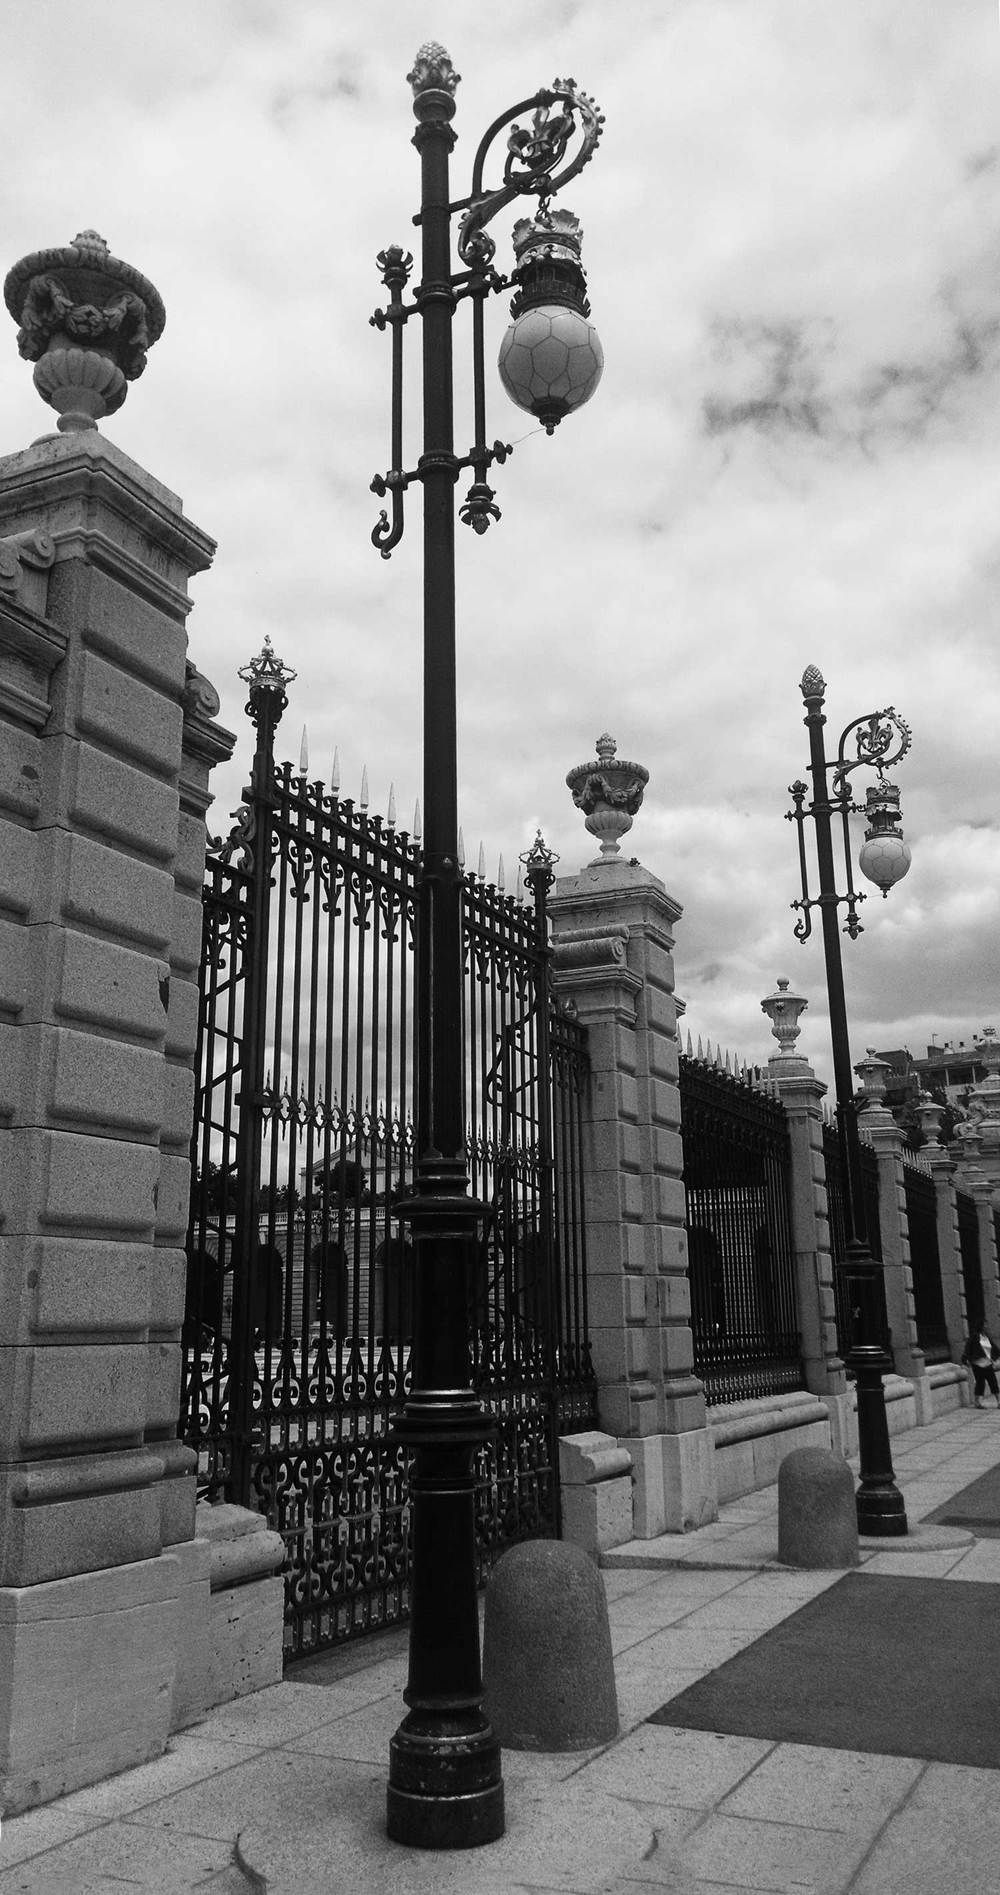 OG-The_Royal_Palace_Fence_Madrid_Spain-062015-BW-WEB-1500.jpg